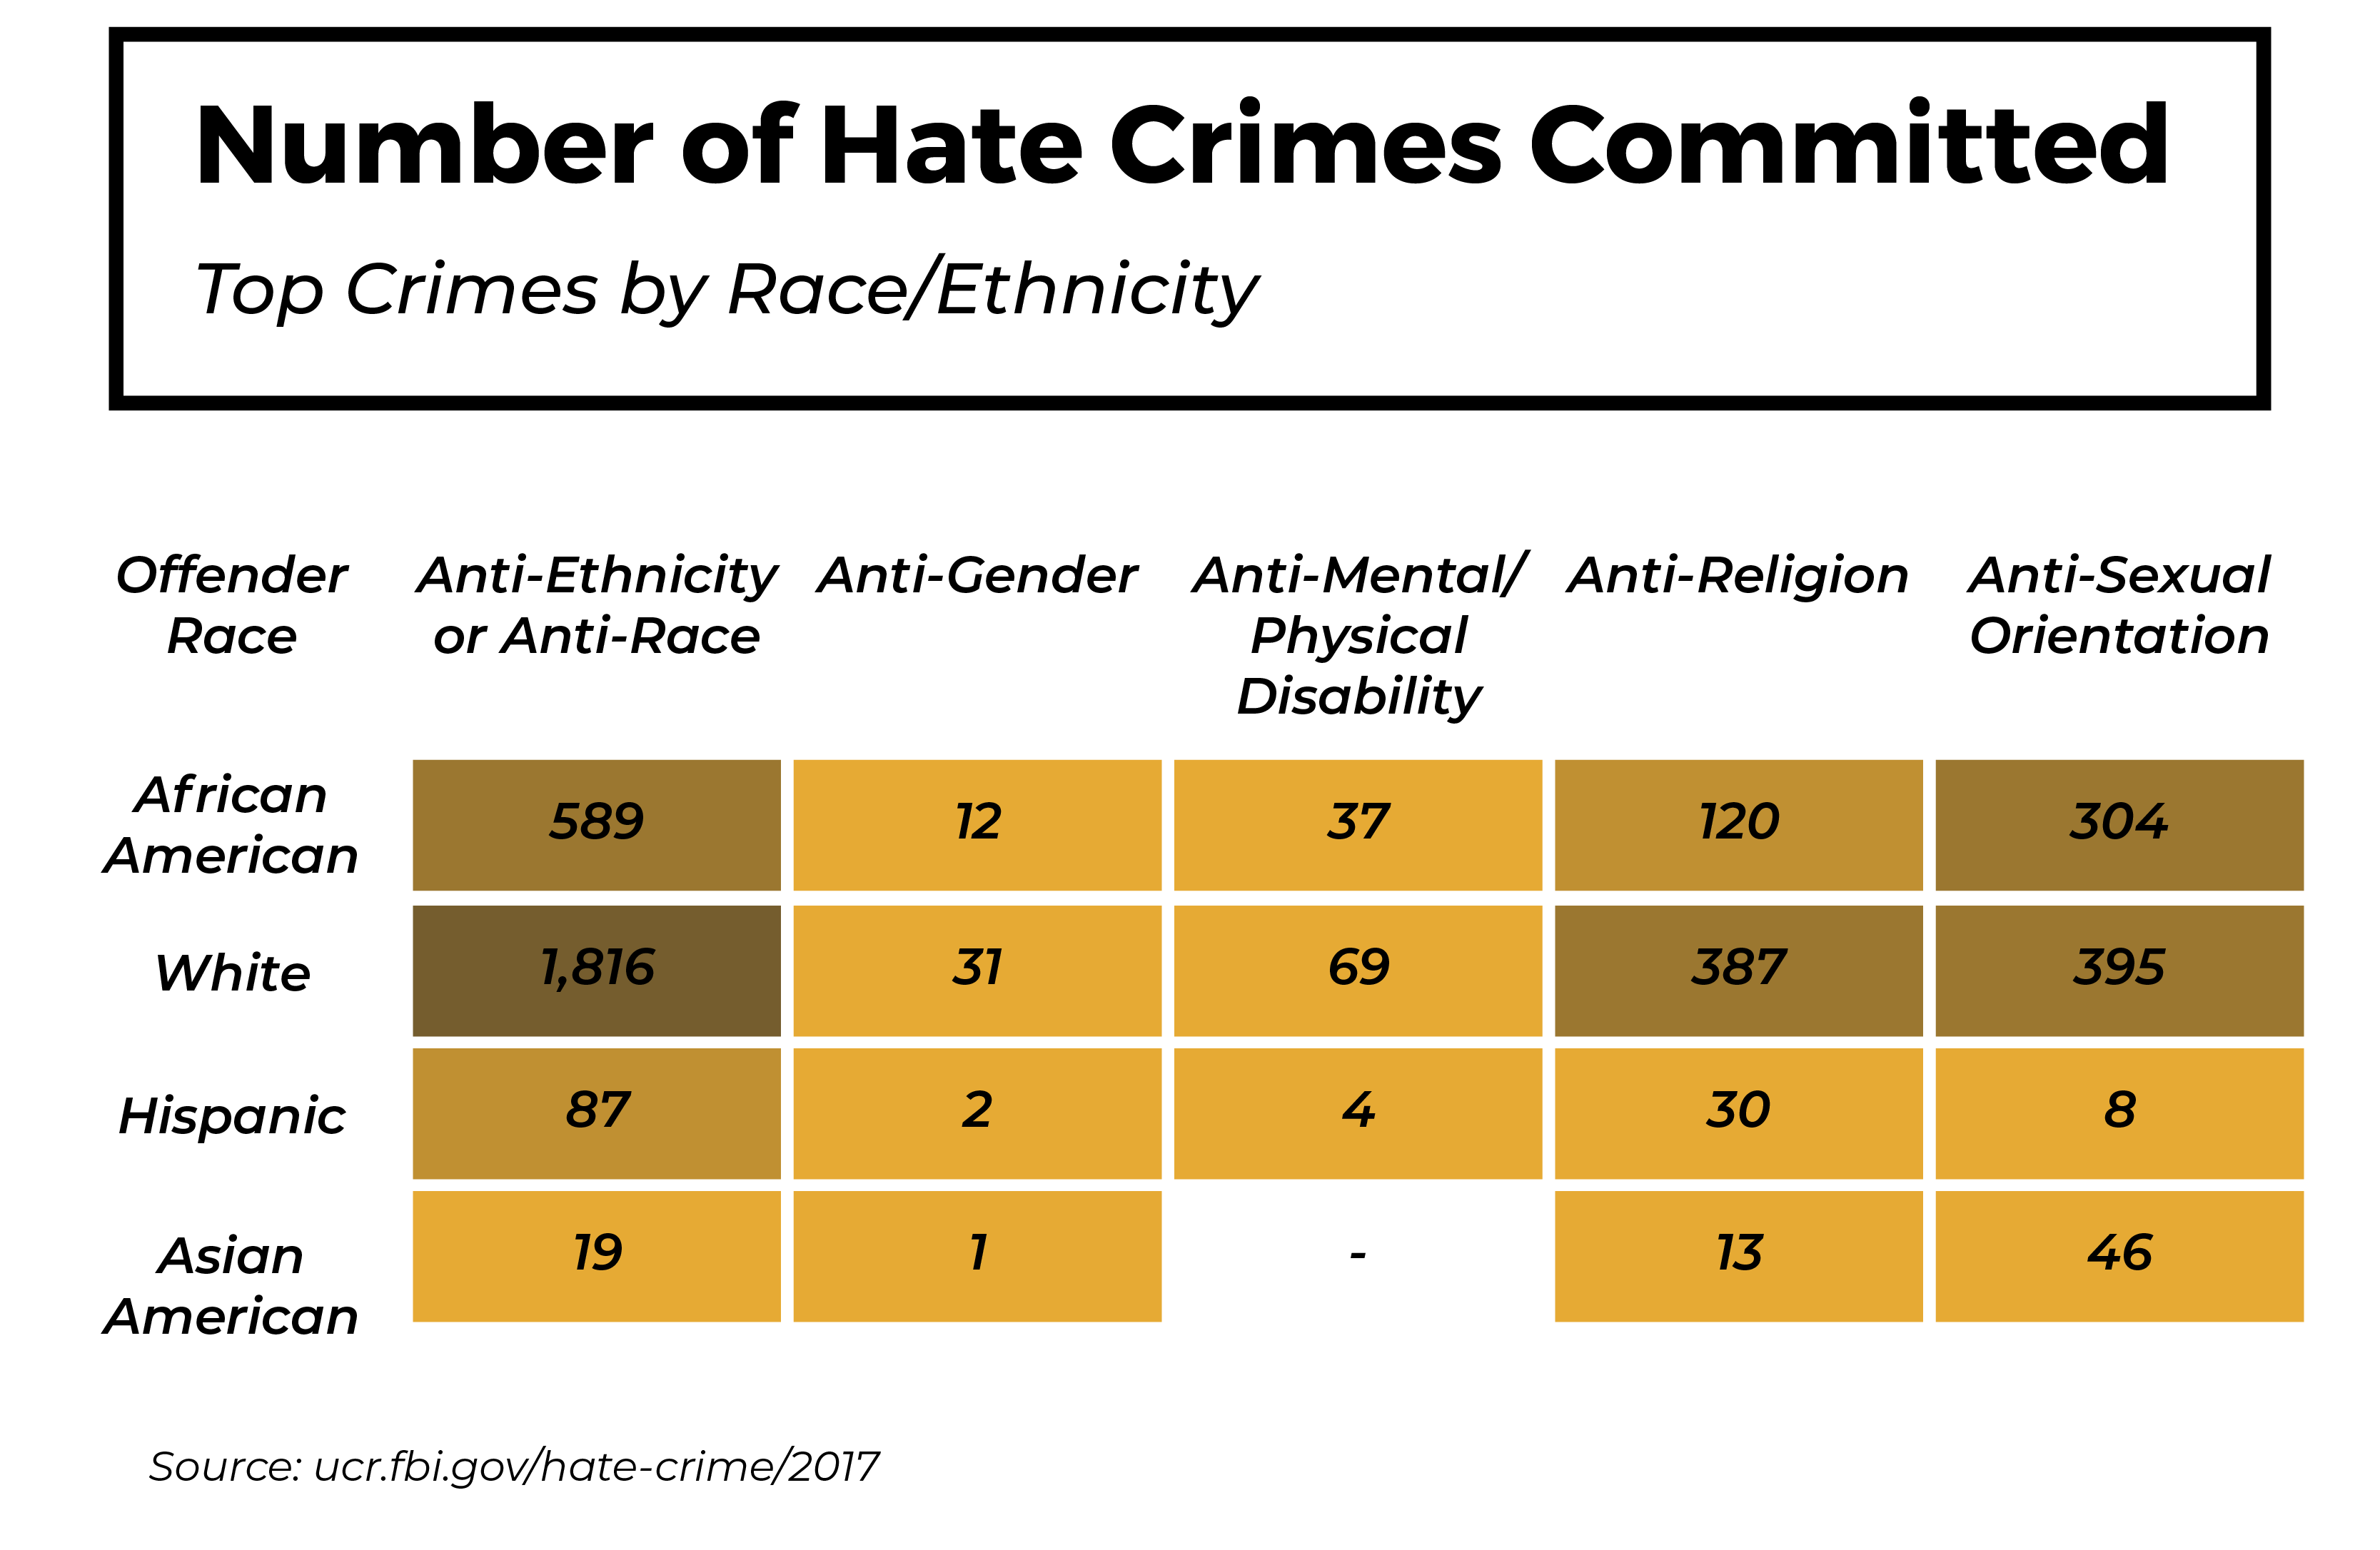 number-of-hate-crimes-committed-by-race-ethnicity